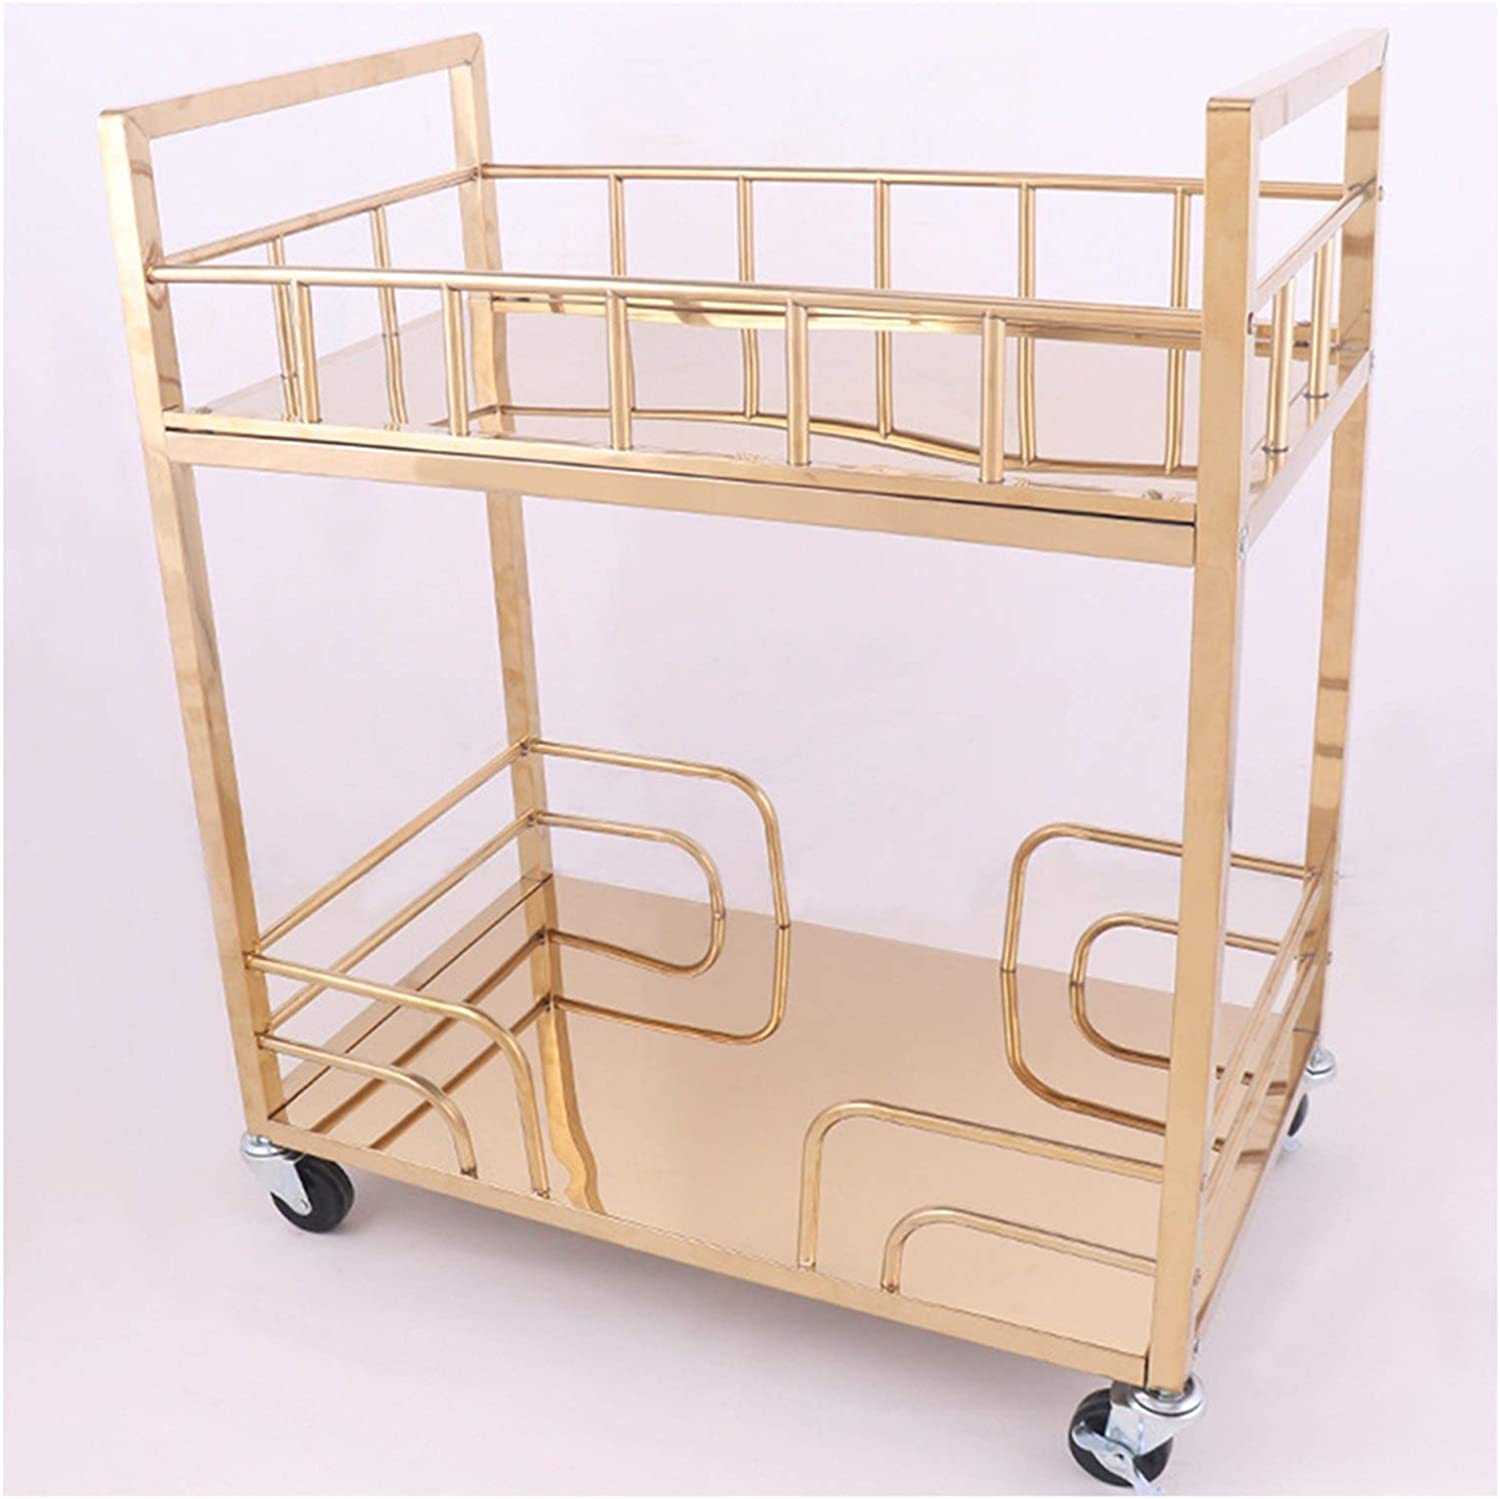 RKRLJX Bar Cart Industrial Inventory cleanup selling sale Kitchen Max 48% OFF Car Serving Carts Rolling